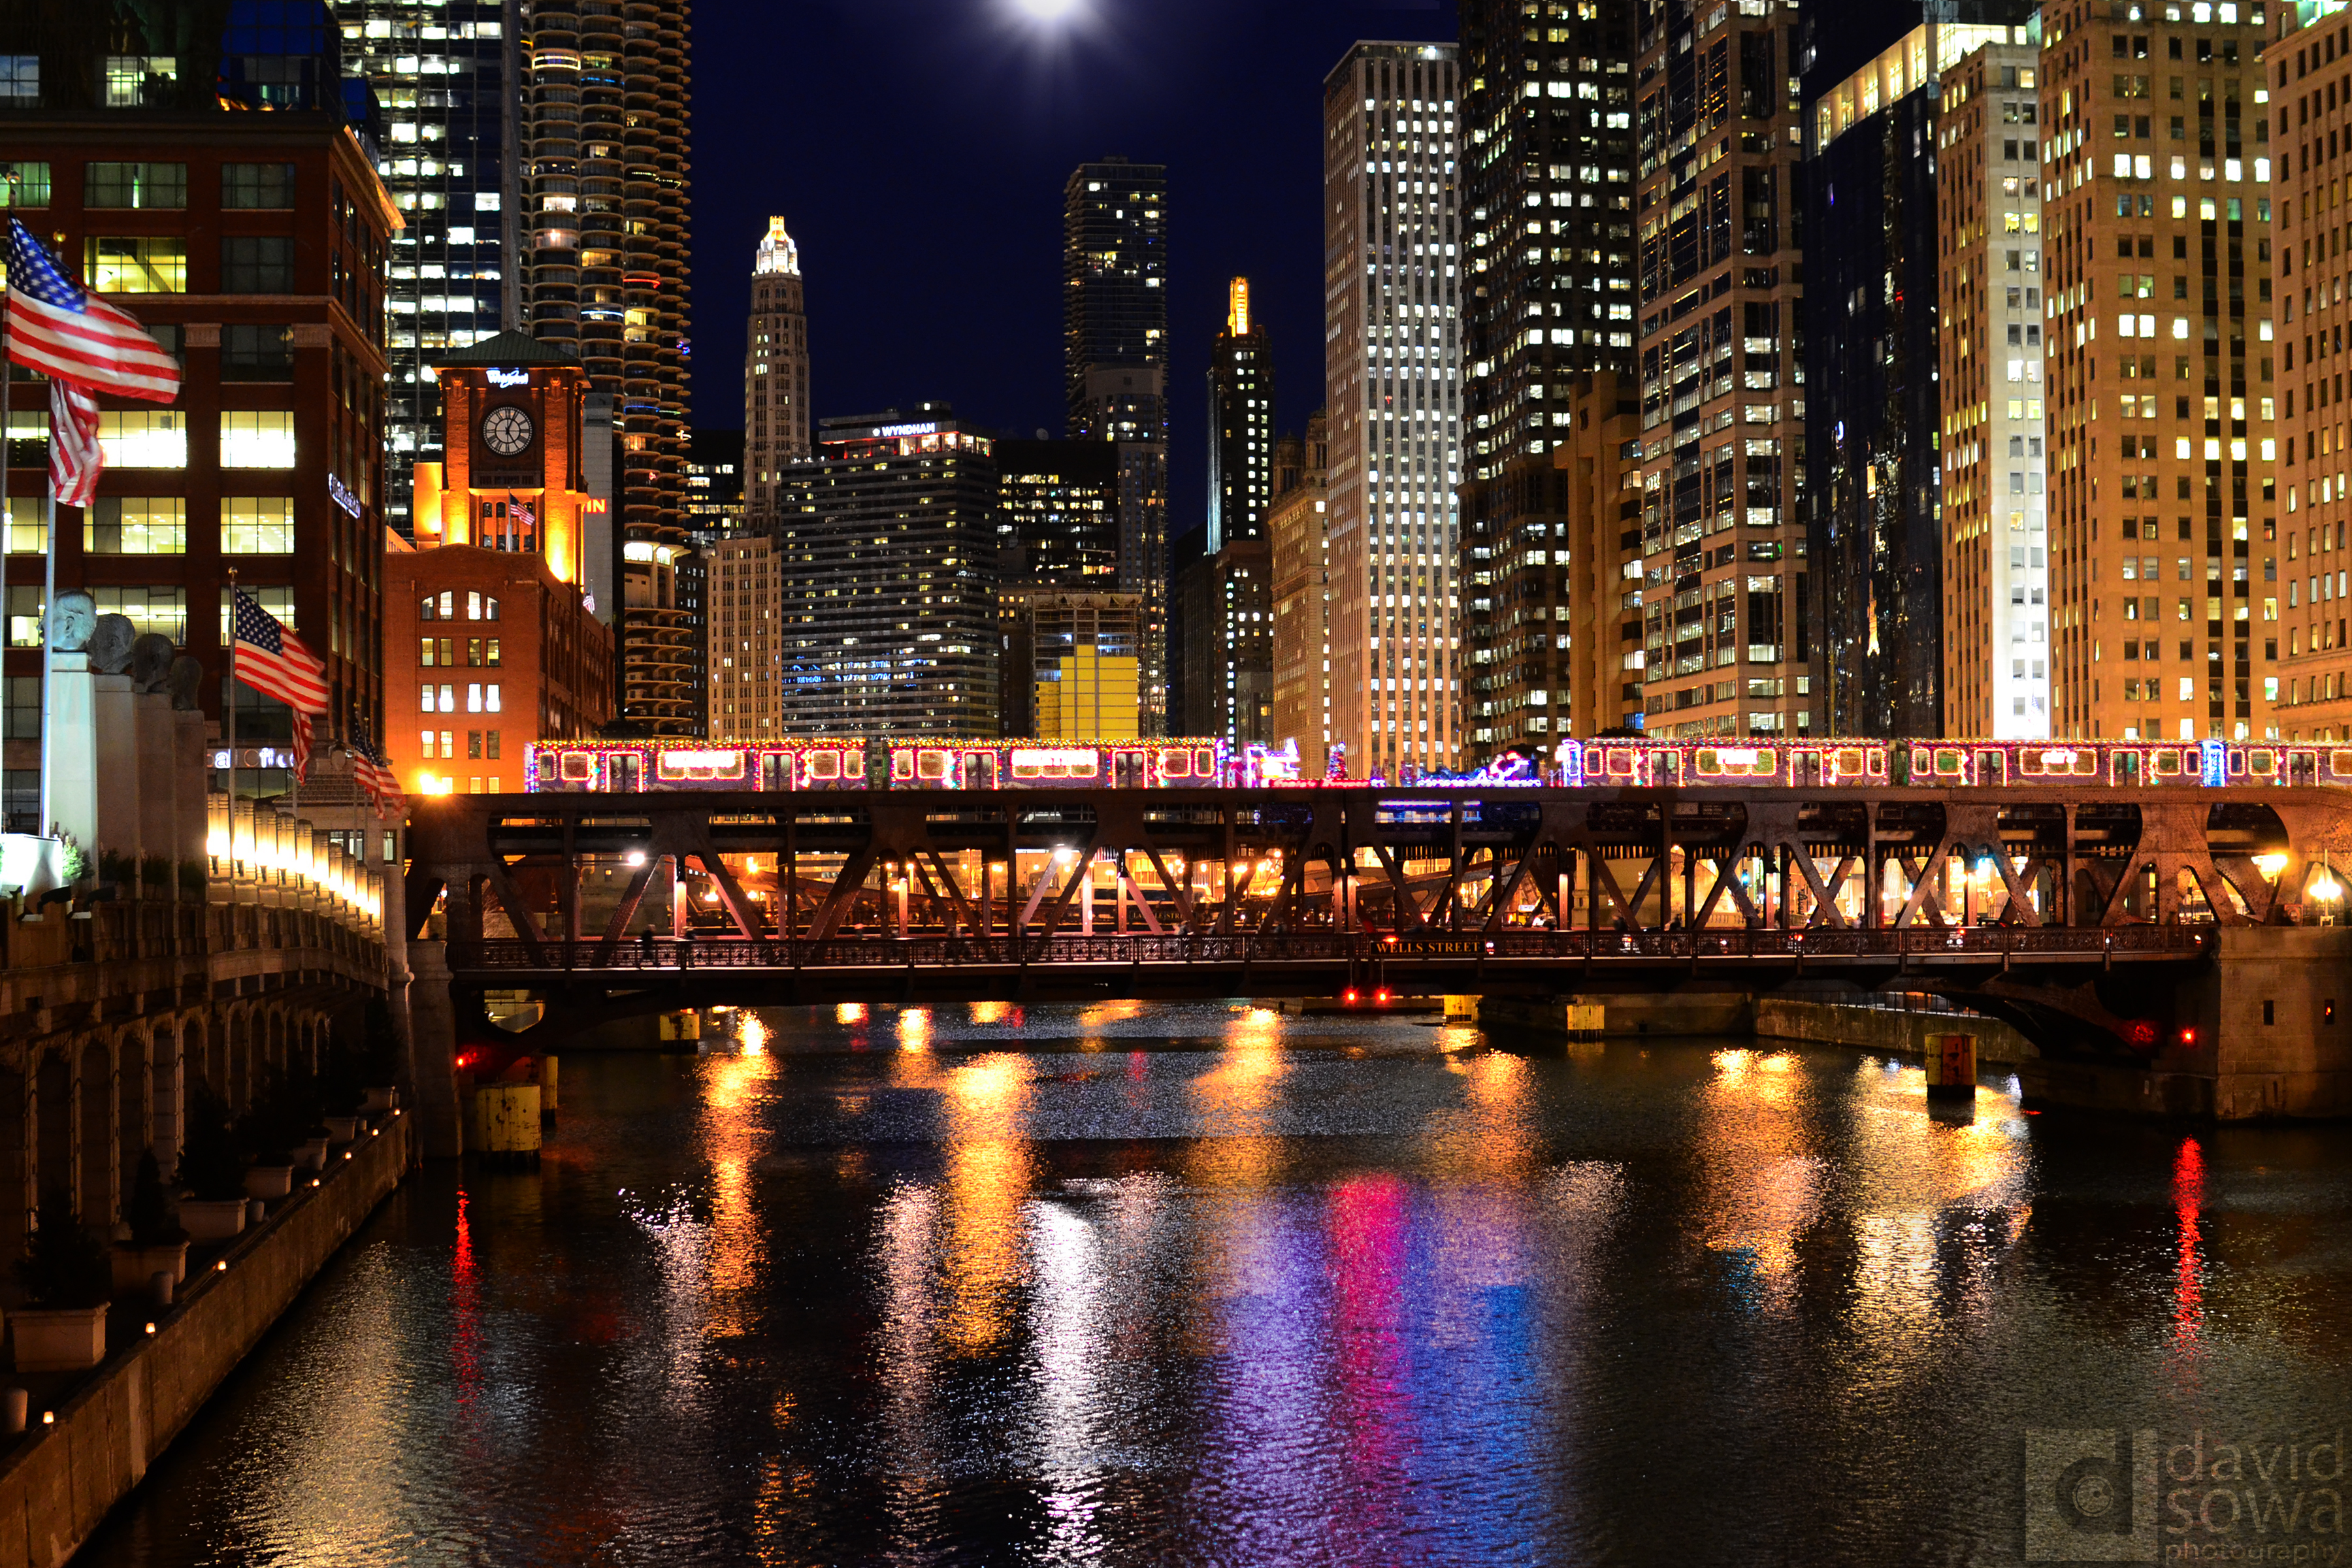 2014 CTA Holiday Train on the Chicago River | David Sowa